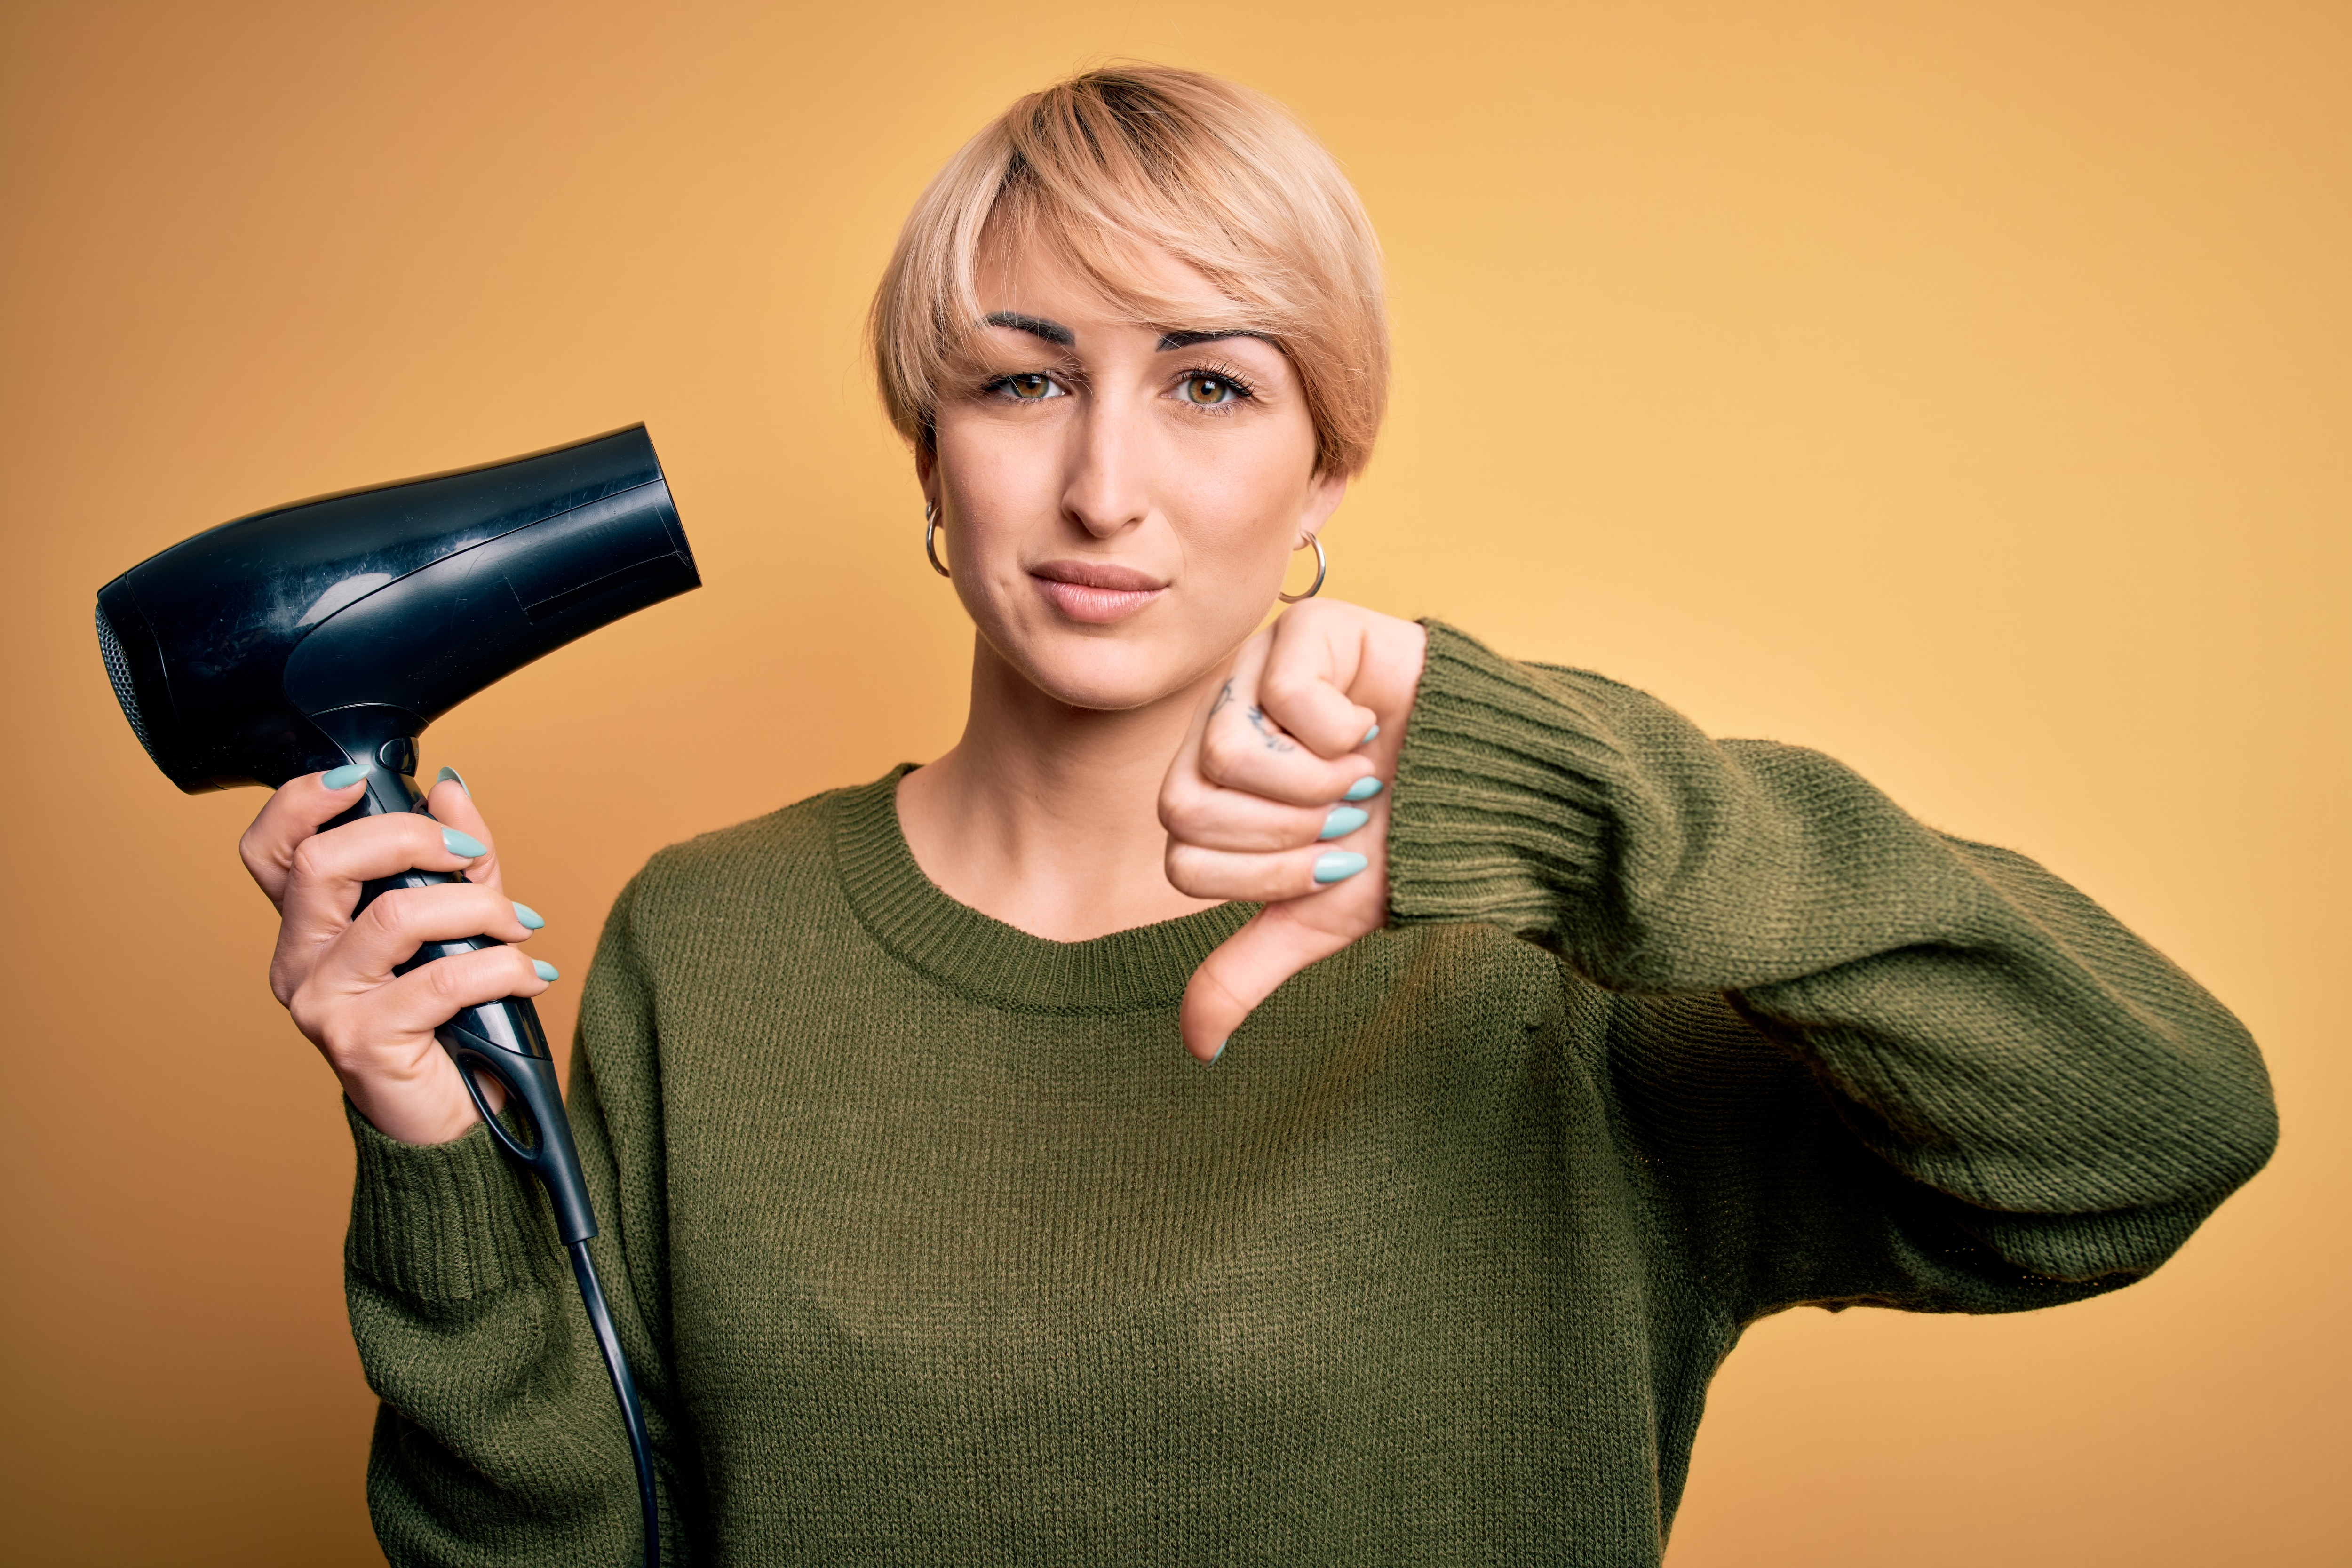 A lady with short hair, with her thumb down and a hair dryer in her other hand.